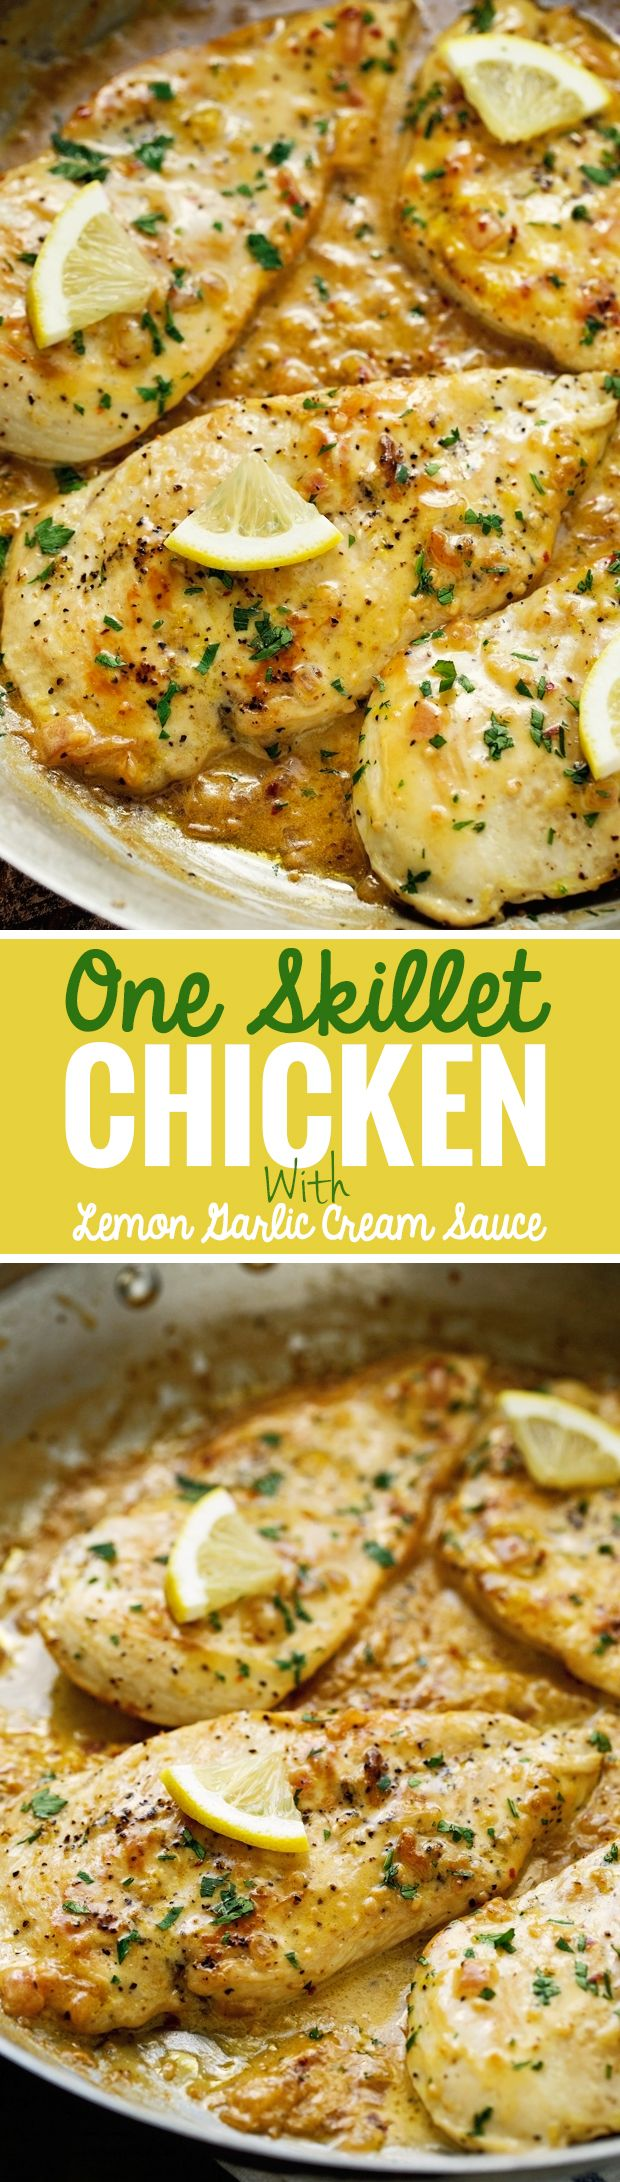 One Skillet Chicken with Lemon Garlic Cream Sauce - Ready in 30 minutes are perfect over a bed of angel hair pasta!